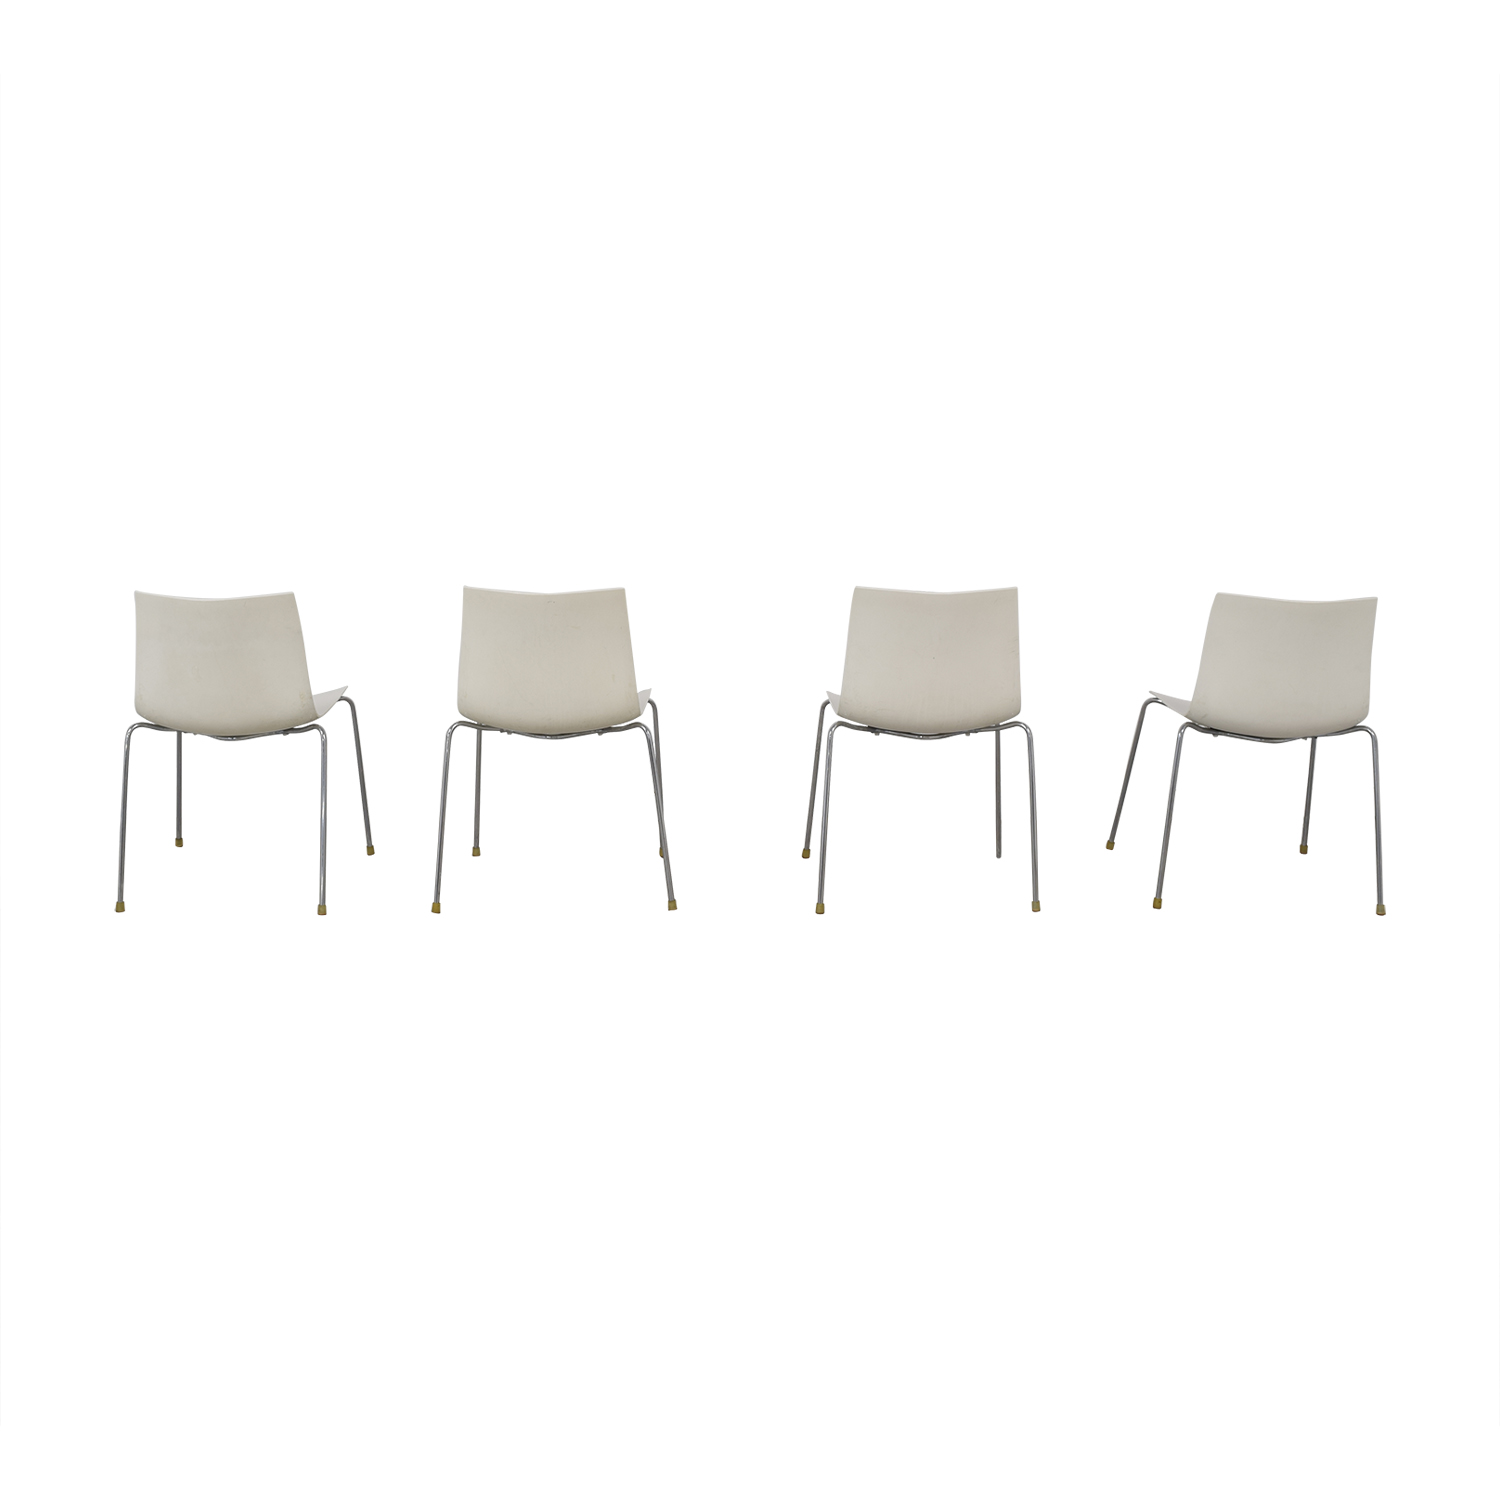 "Arper Arper ""Catifa 46"" Chairs coupon"